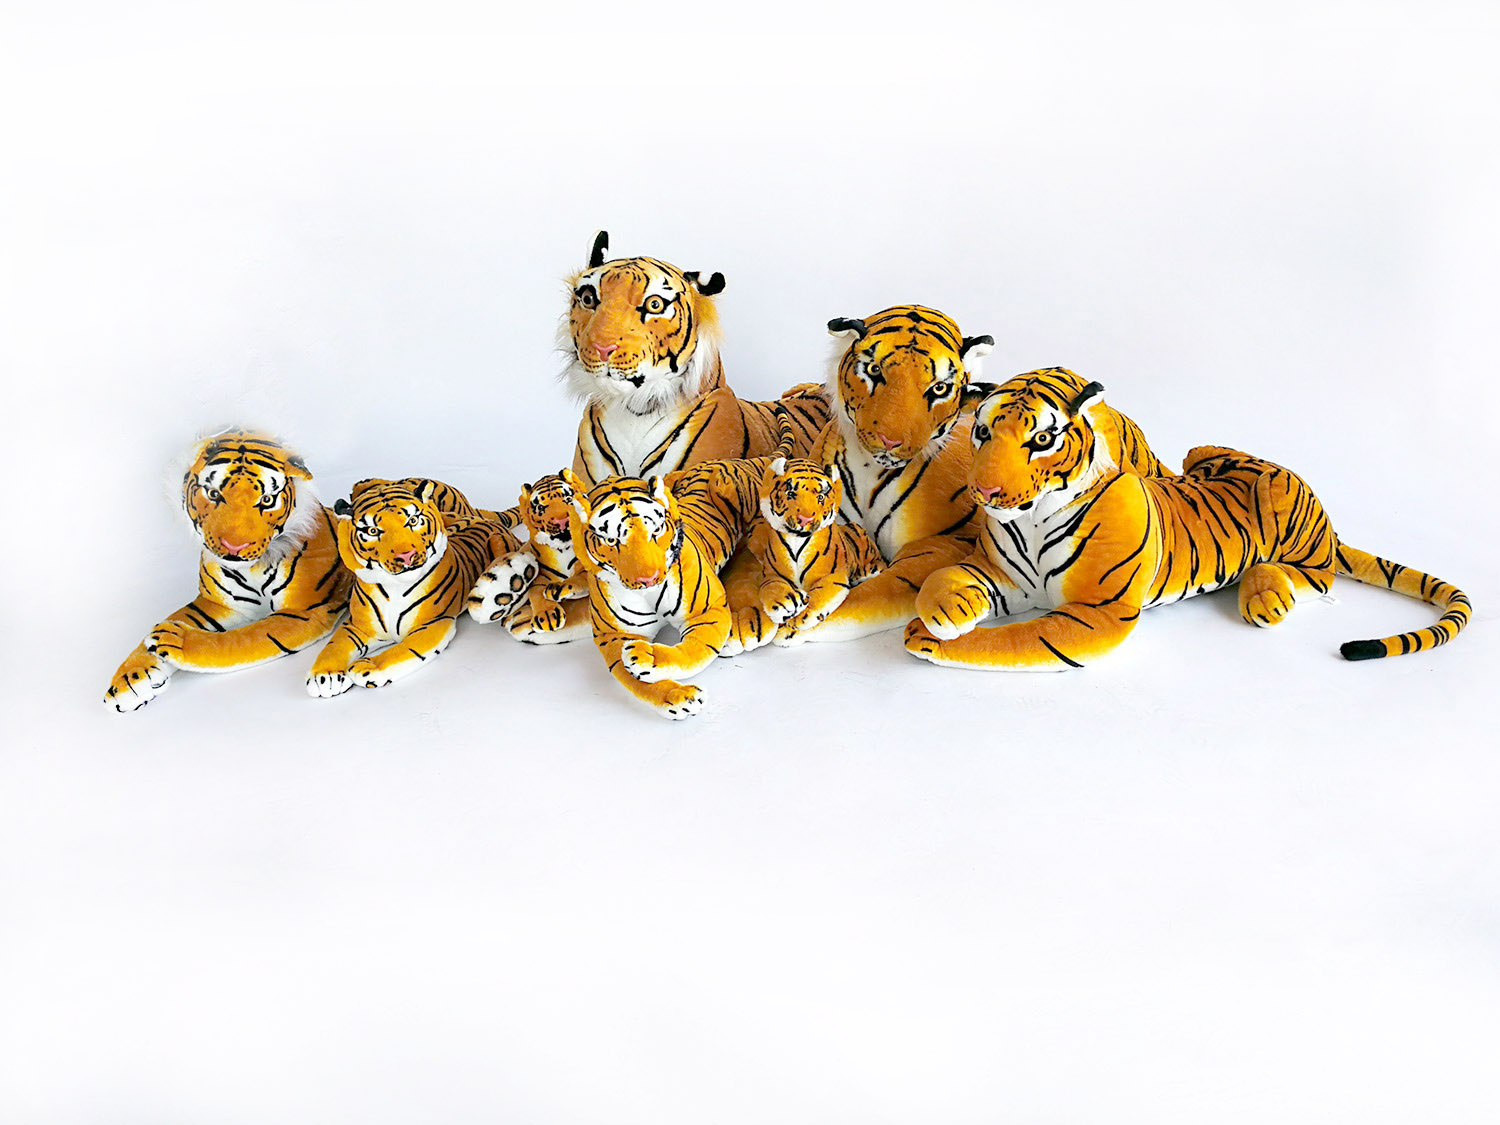 Giant Tiger Custom Plush Toy Soft Stuffed Animals Simulation White Huge Tiger Doll Sleeping Pillow Children Kids Gifts